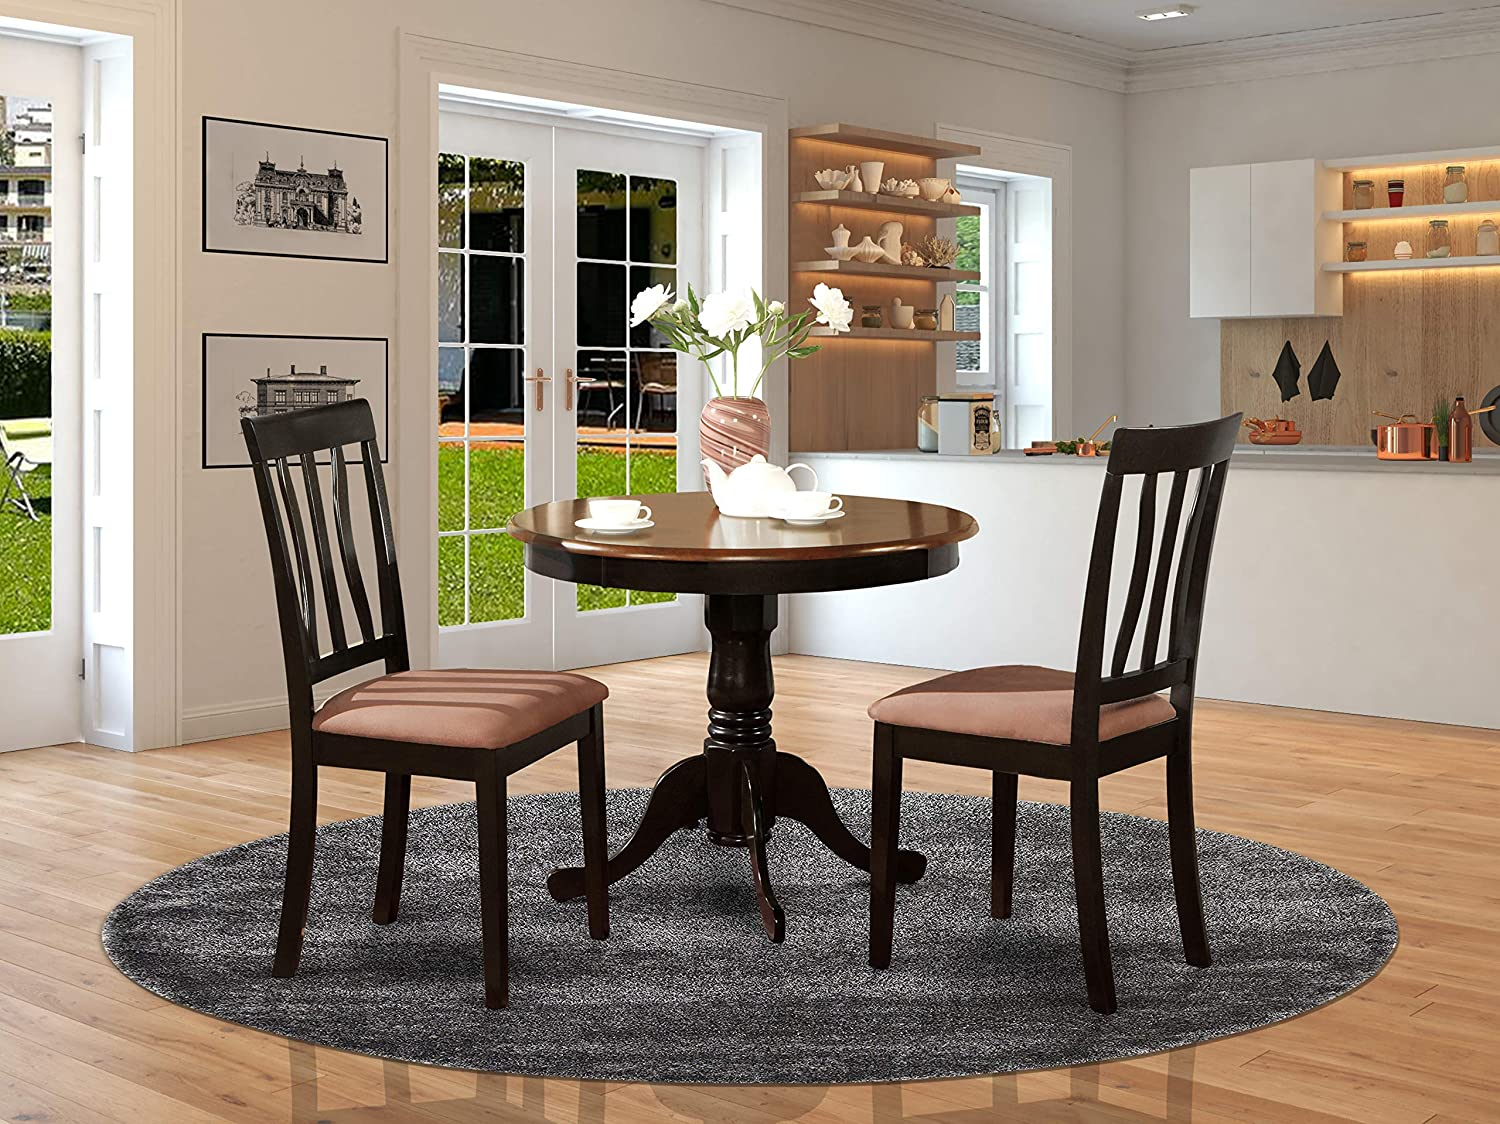 East West Furniture Dining Set 2 Excellent Wood Dining Chairs A Beautiful Wood Dining Table Pu Leather Seat And Black Finnish Round Wooden Dining Table Furniture Decor